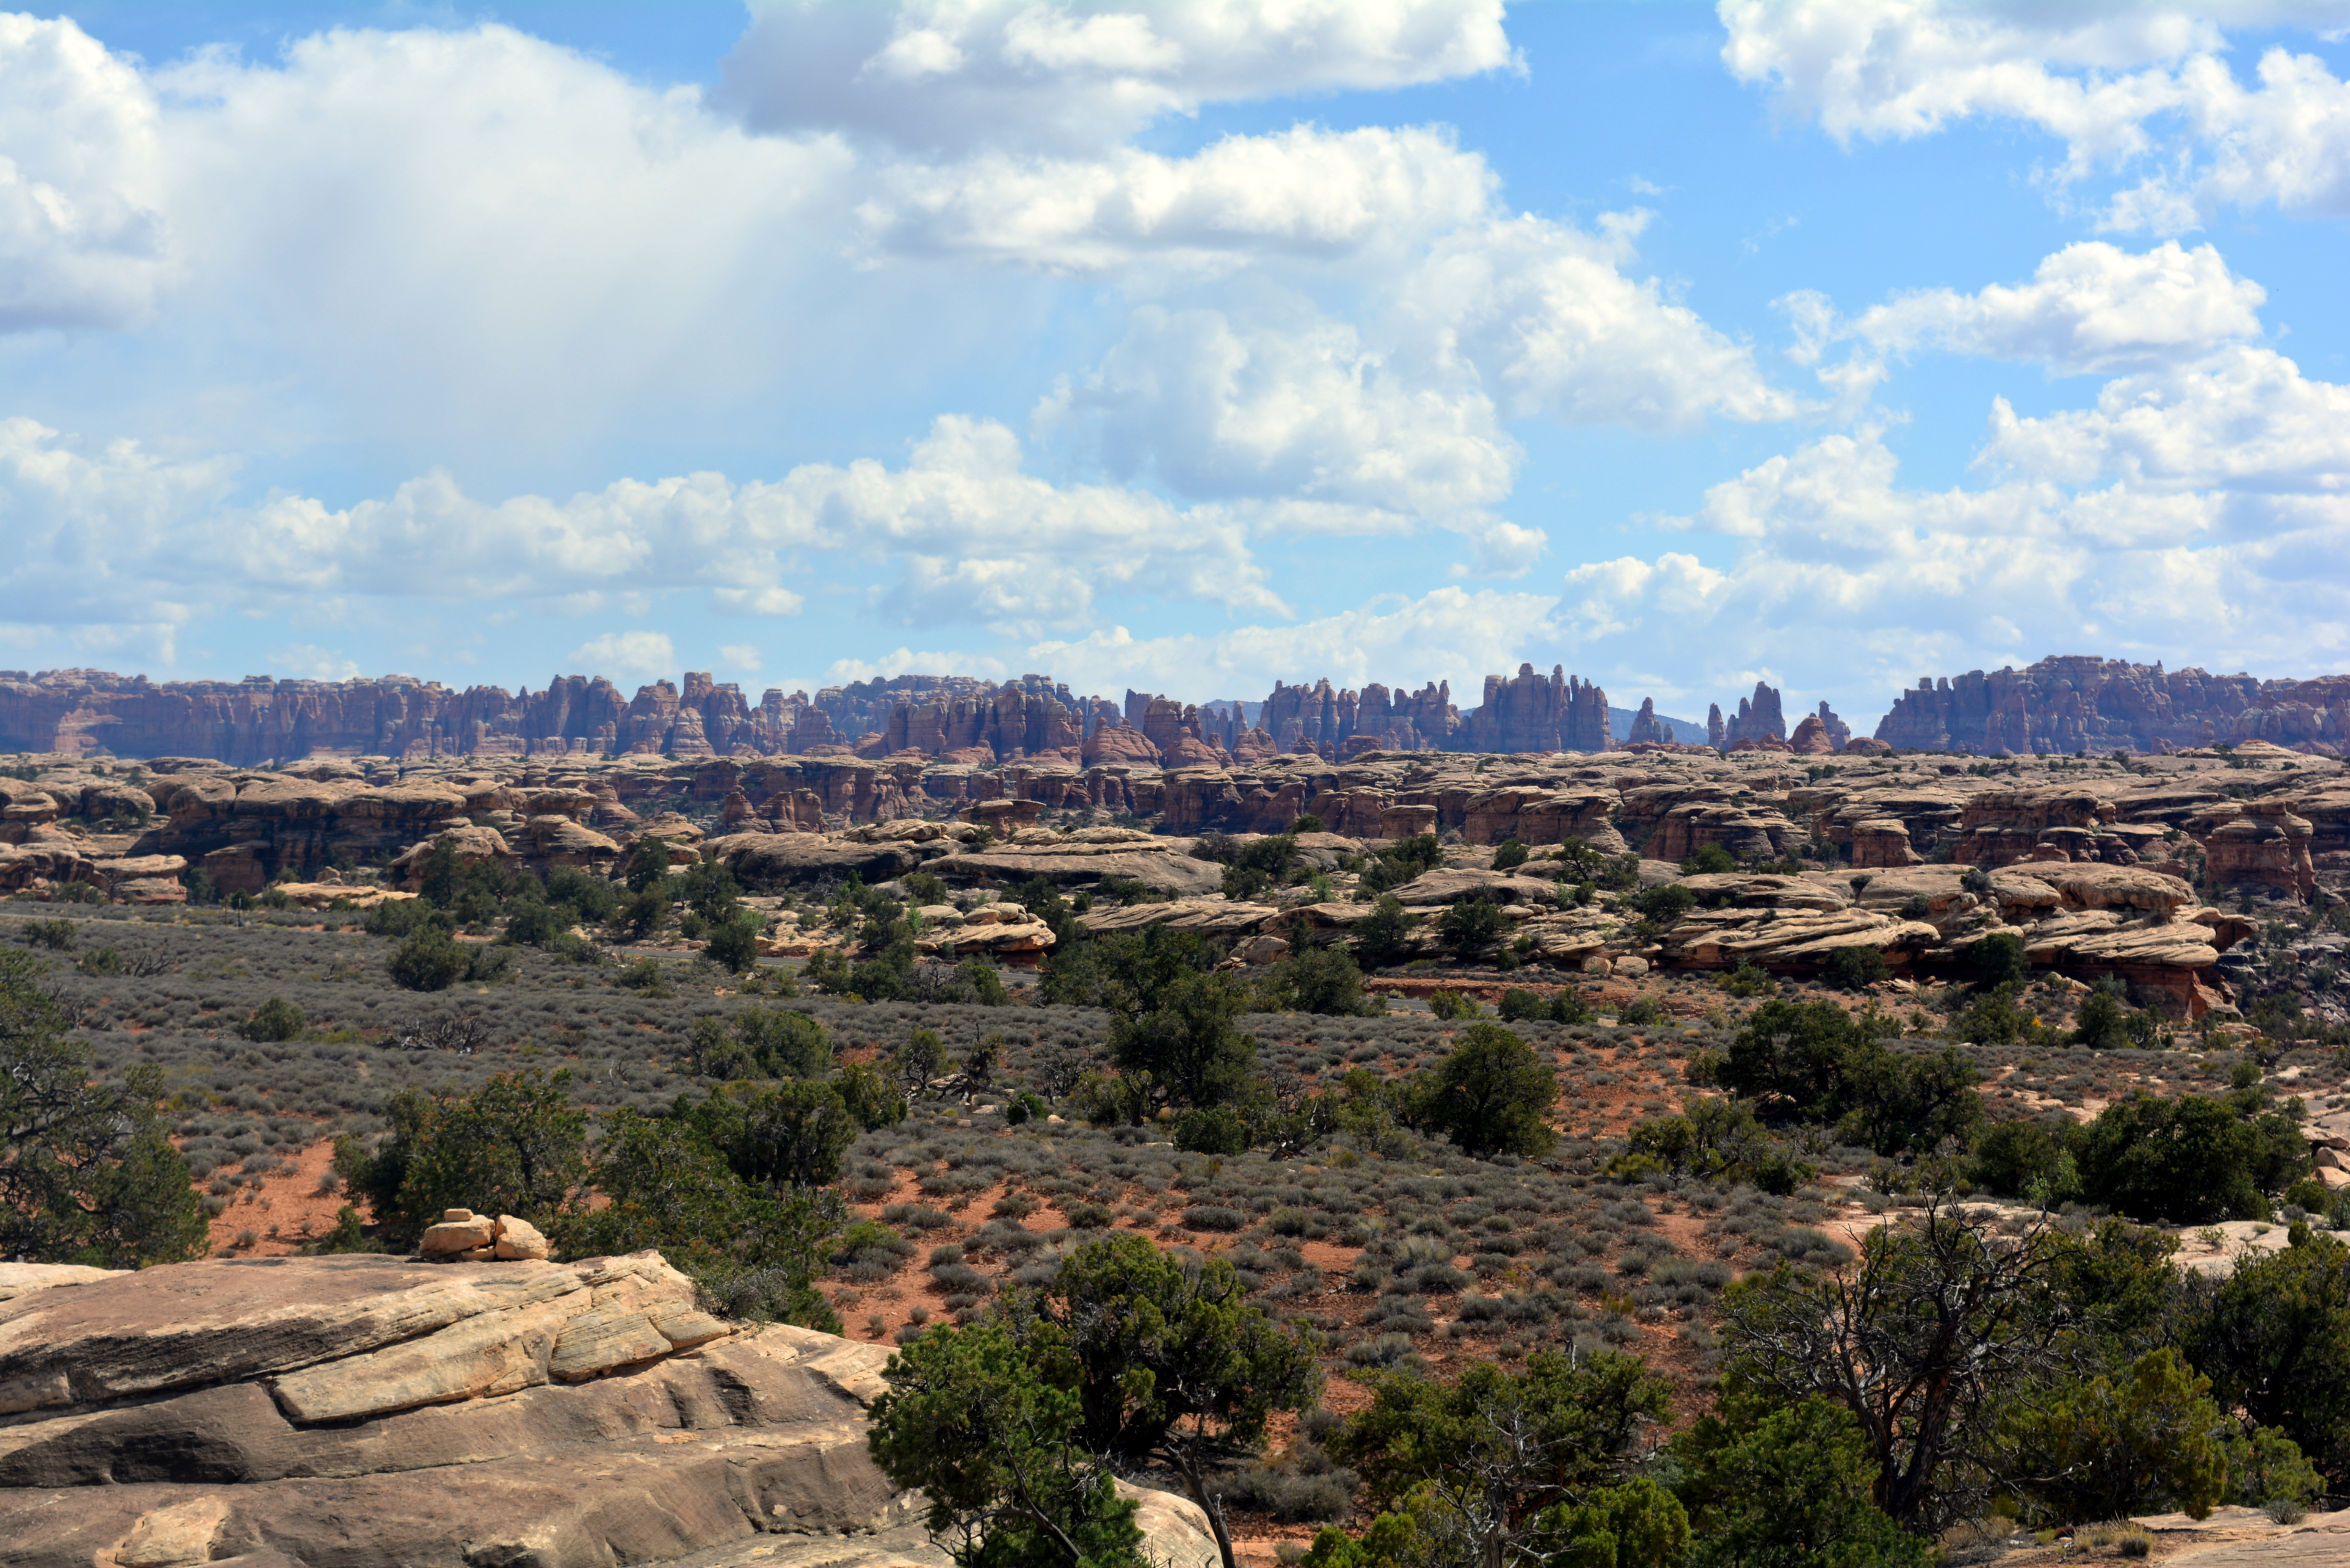 In The Needles district of Canyonlands National Park, spires of Cedar Mesa Sandstone rise hundreds of meters above a network of canyons and grasslands.